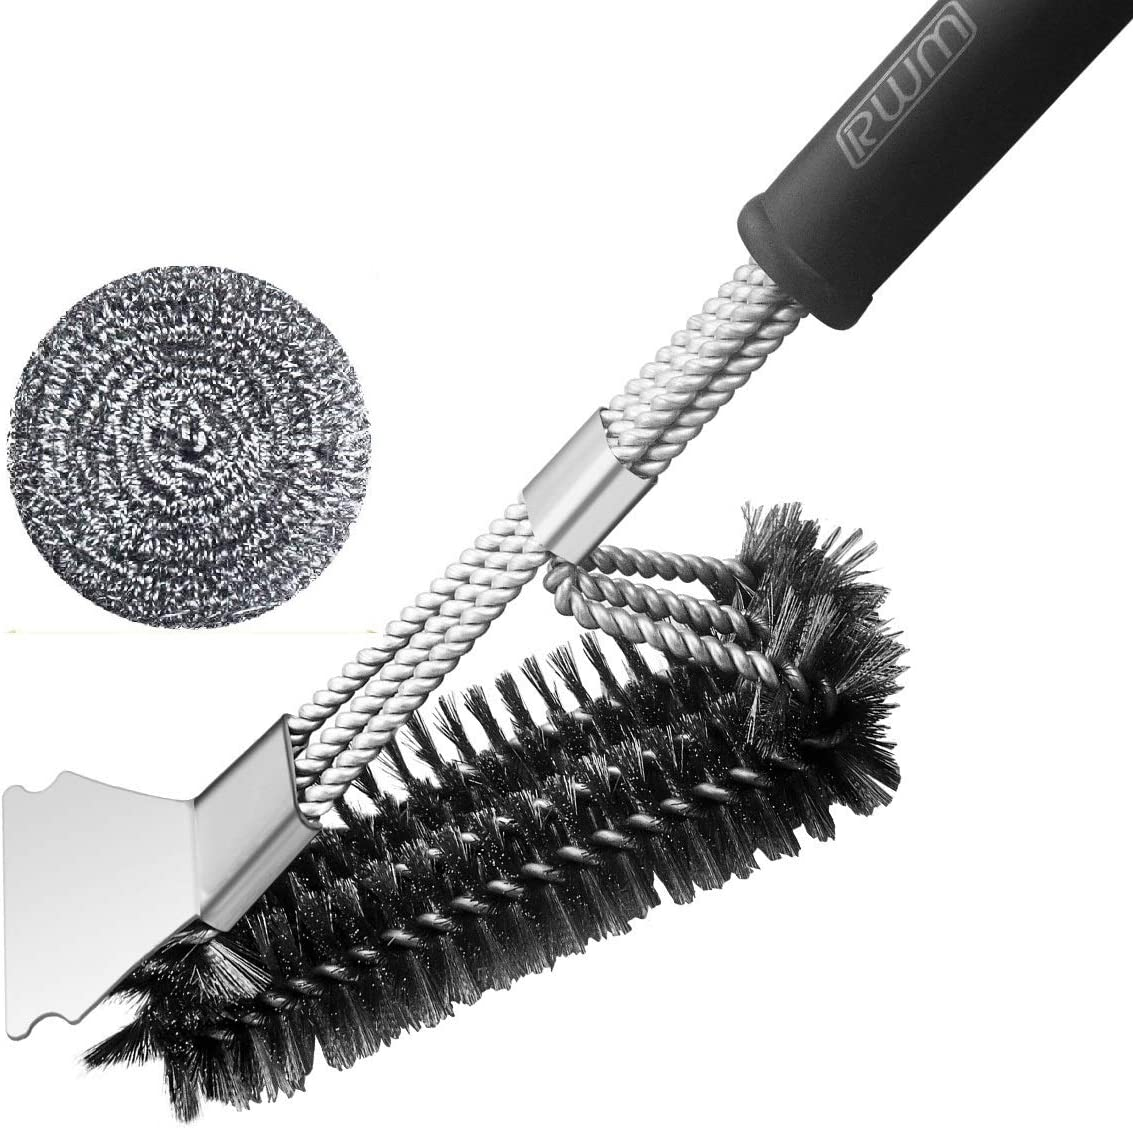 Grill Brush, RWM BBQ Grill Cleaning Brush 18 inch Stainless Steel 3-in-1 Wire Bristle Barbecue Brush Cleaner with Scraper for Gas/Charcoal Grill